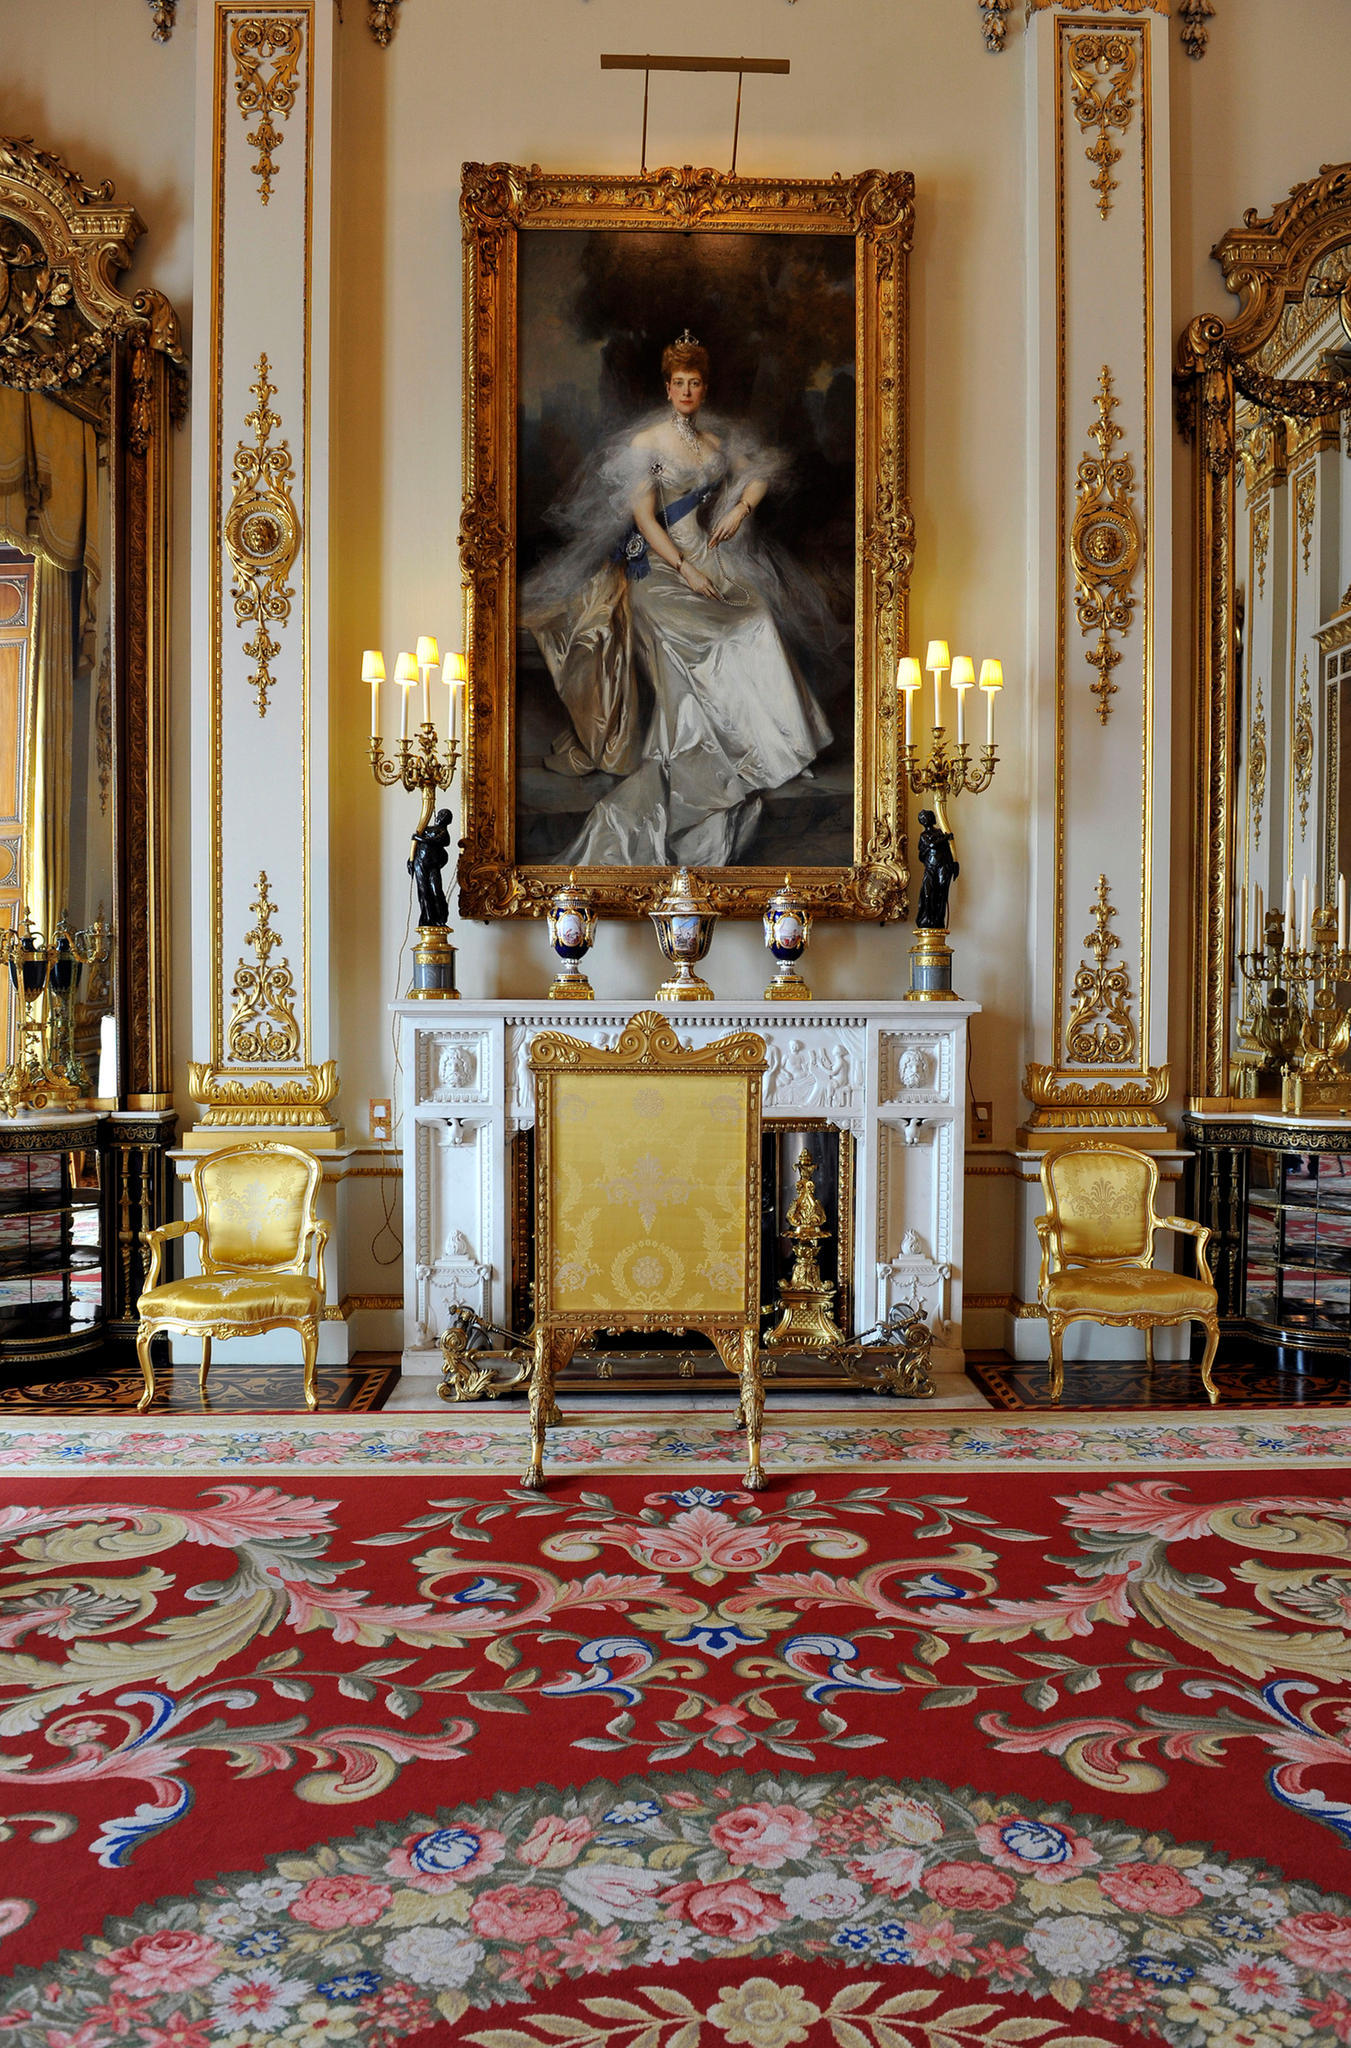 queen elizabeth f r sie gibt es eine geheime t r im palast. Black Bedroom Furniture Sets. Home Design Ideas